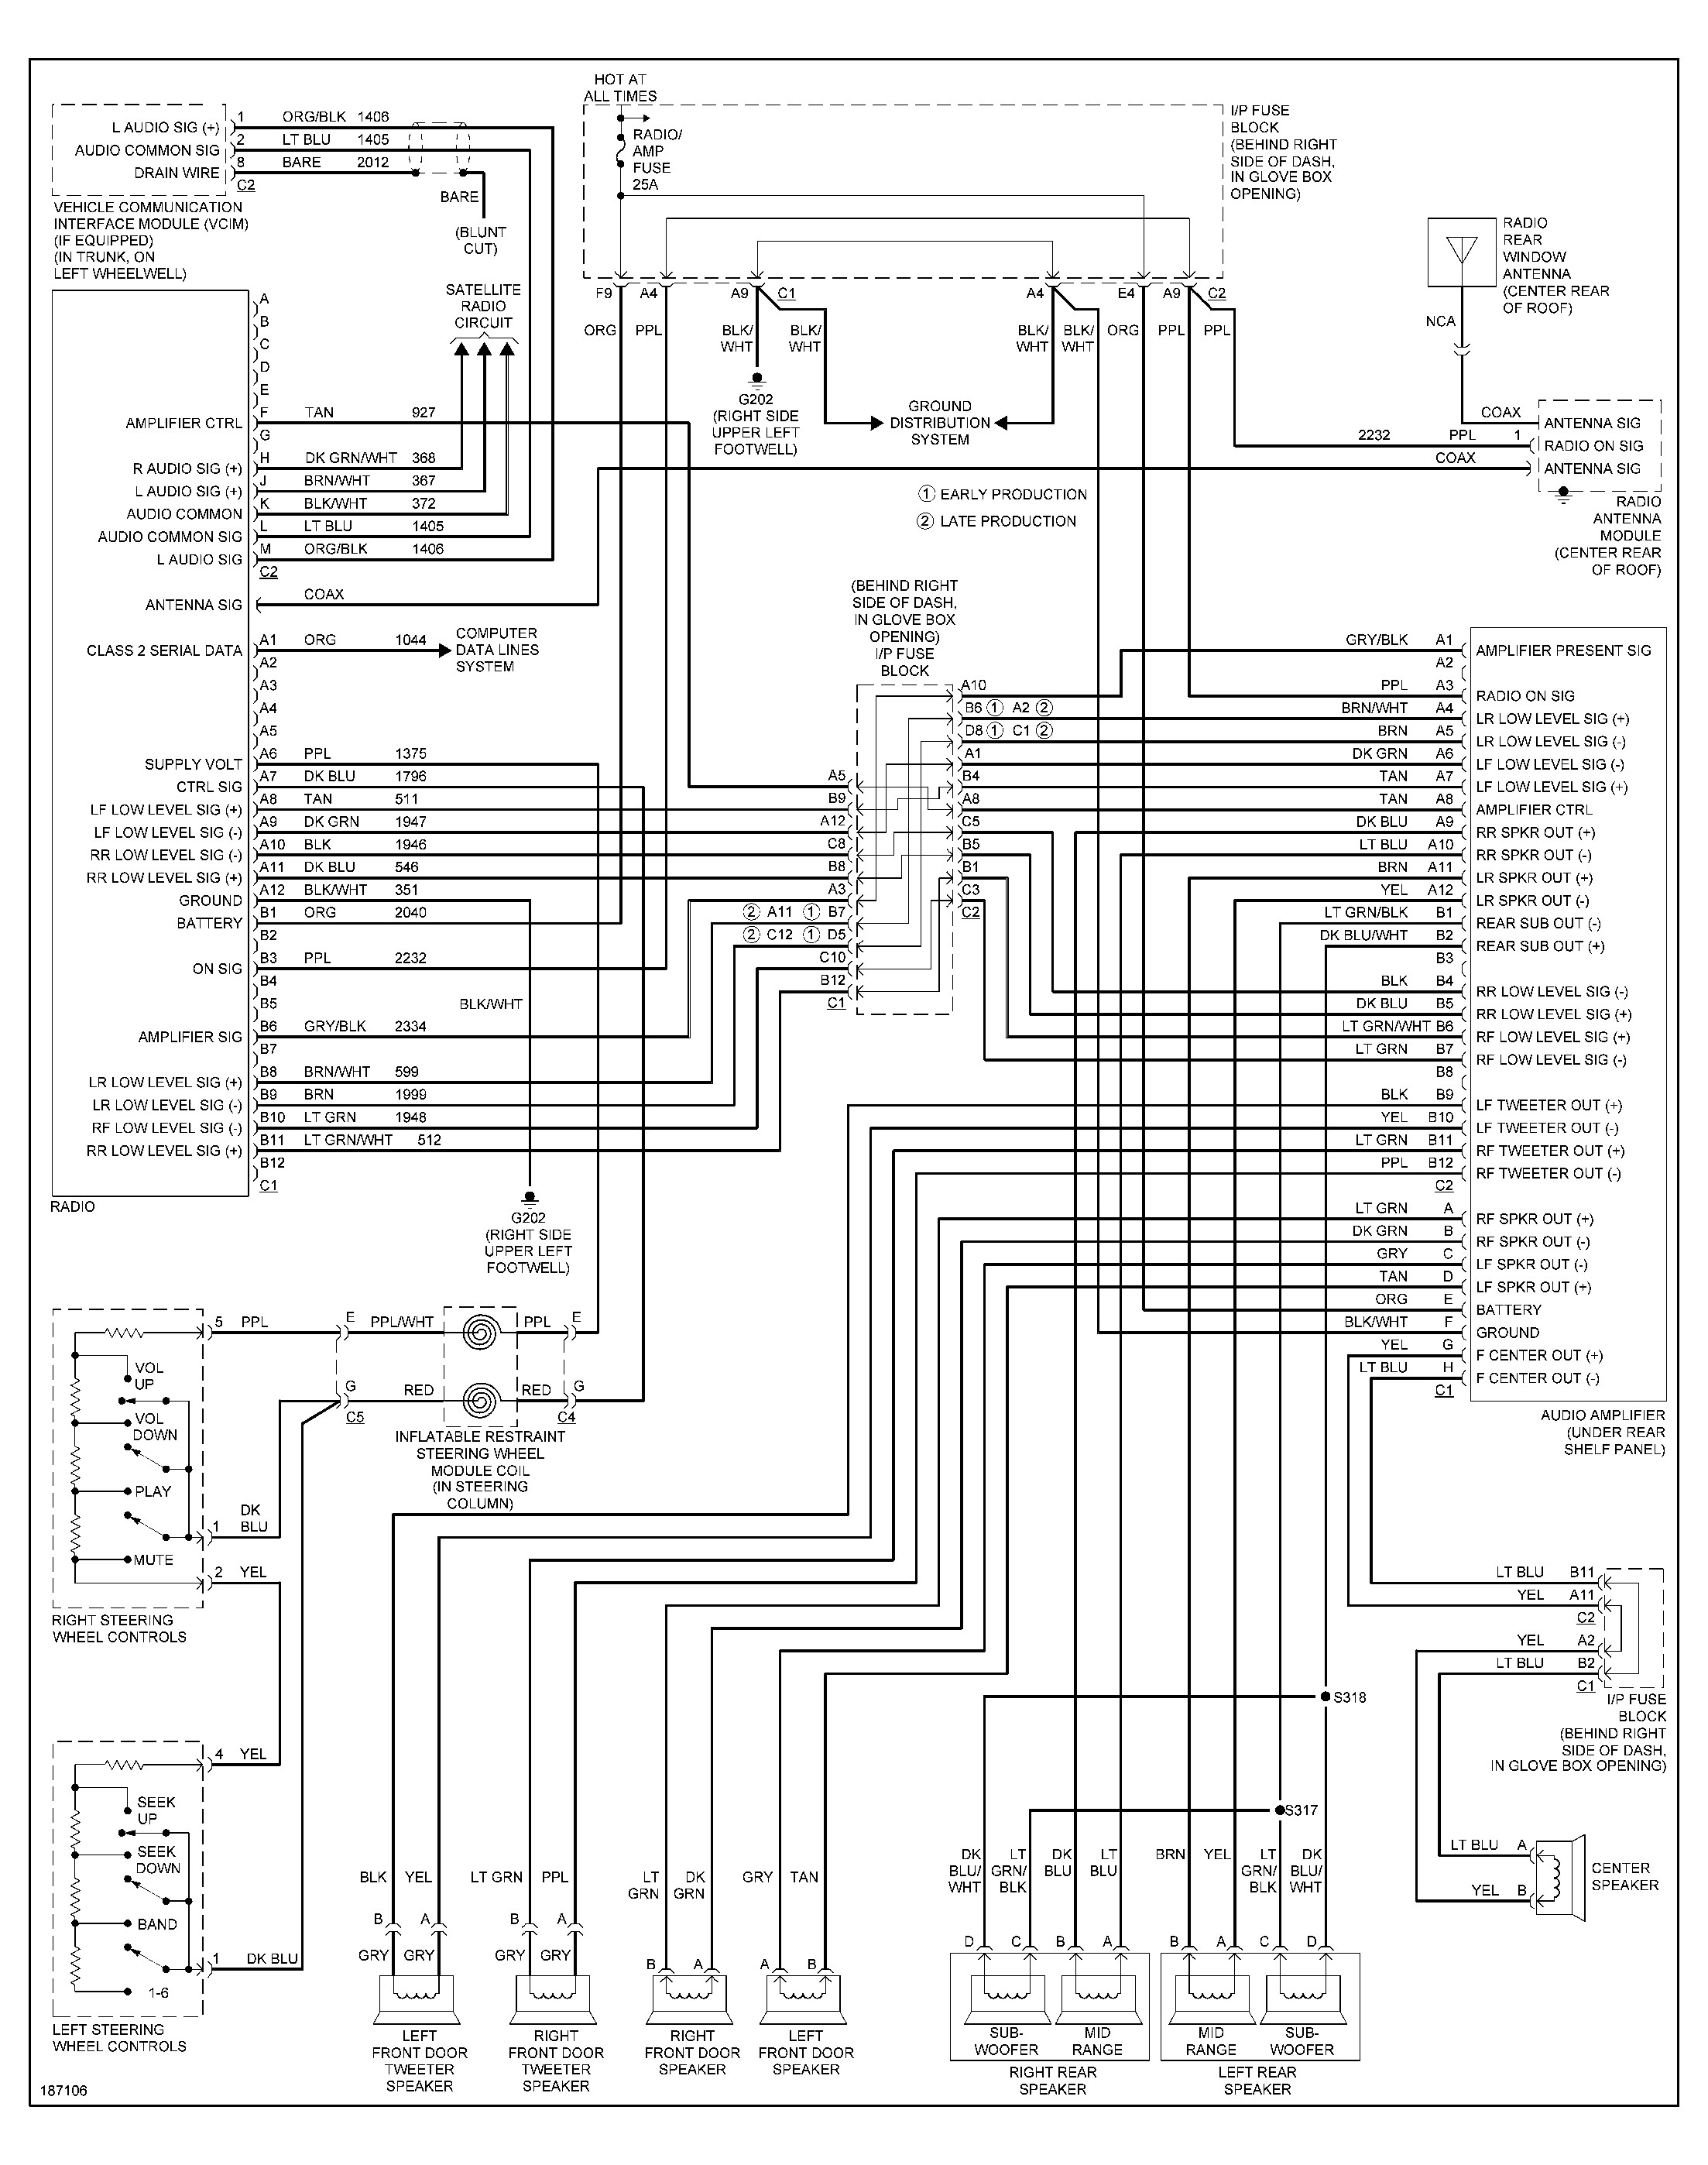 Pontiac Sunfire Radio Wiring Diagram